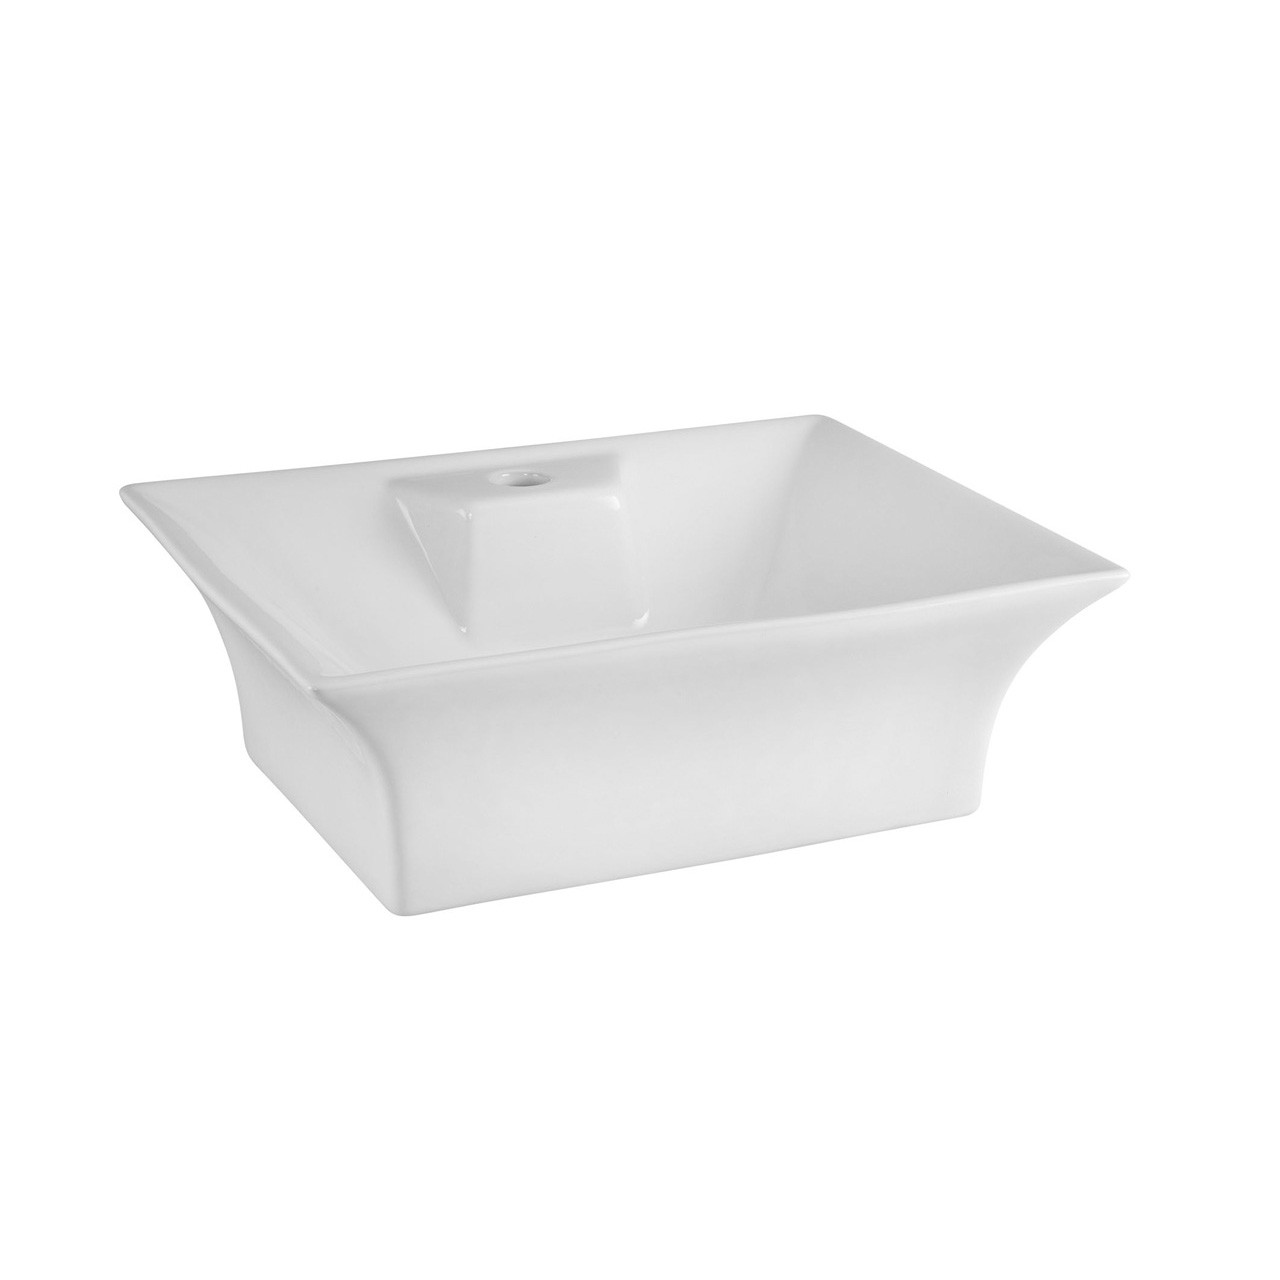 Premier White Rectangular Ceramic Basin - NBV005